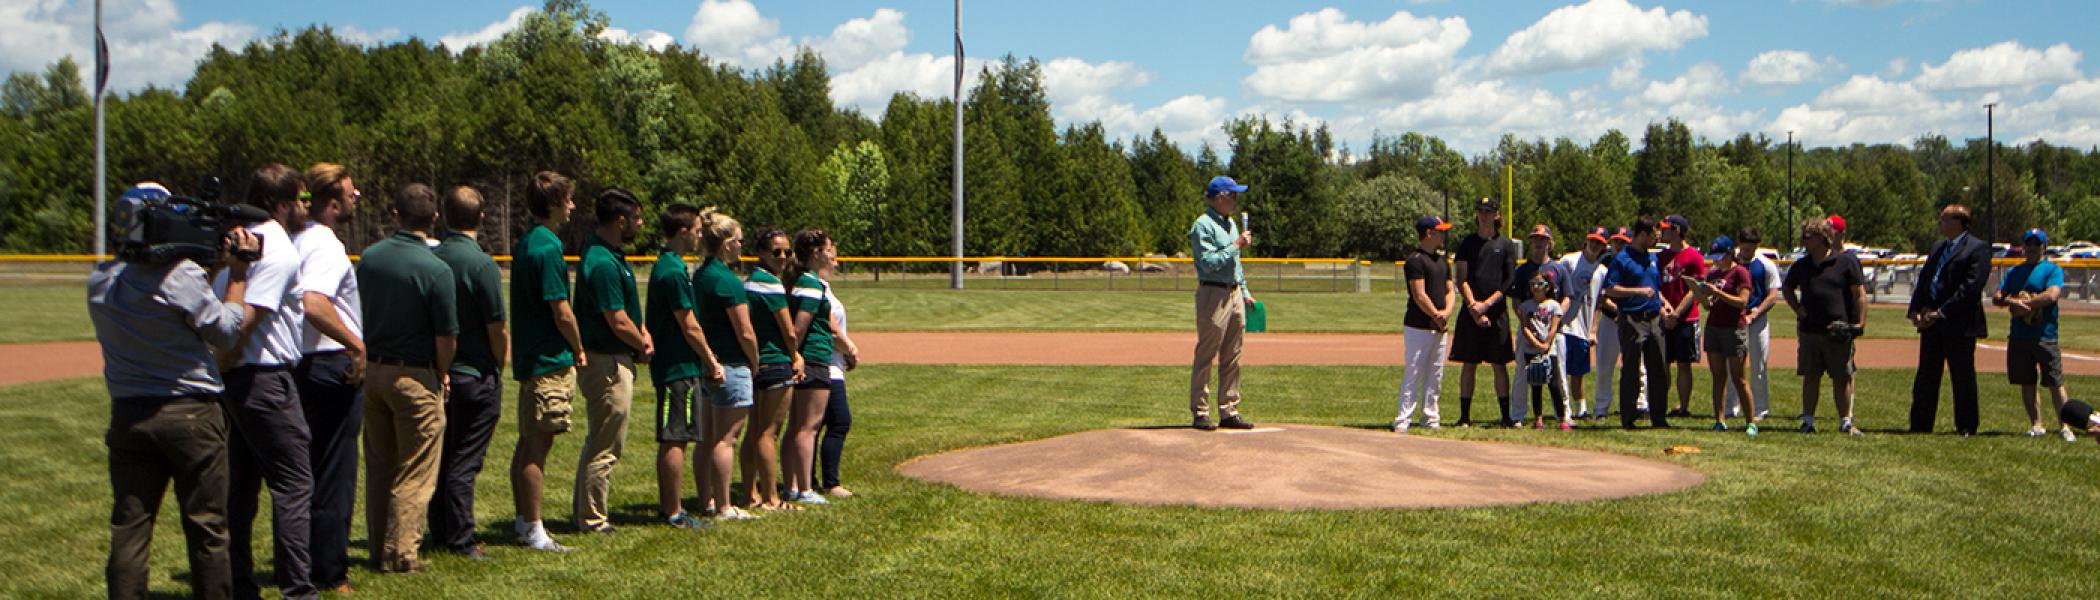 Dr. Leo Groarke standing on a baseball mound talking to a group of people